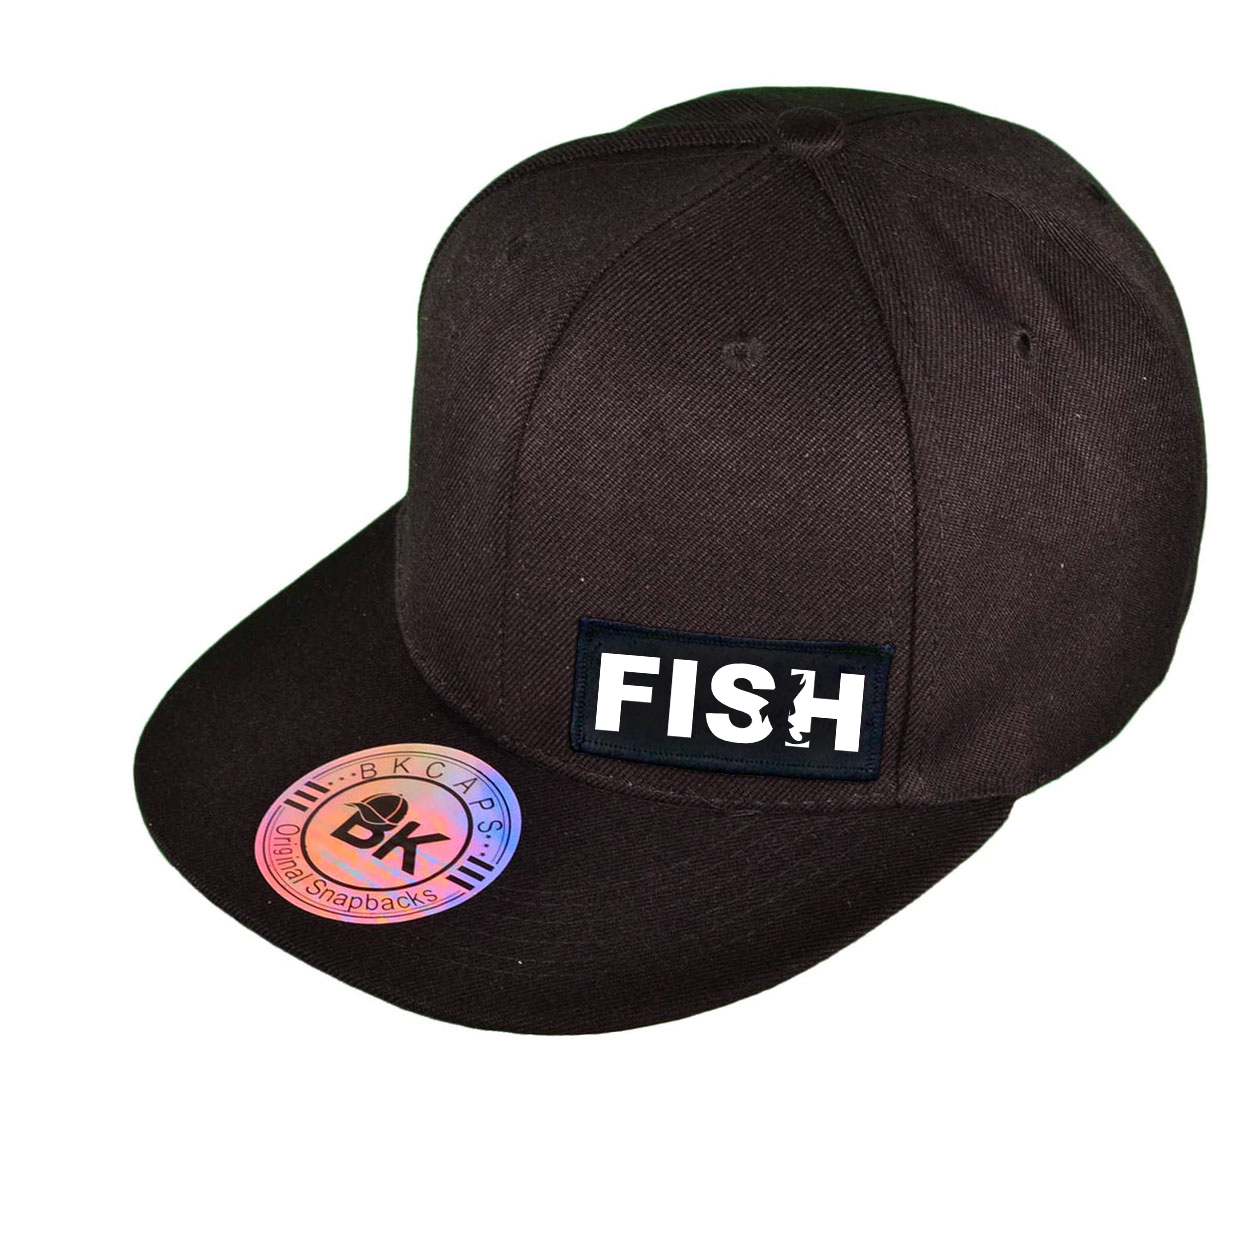 Fish Catch Logo Night Out Woven Patch Snapback Flat Brim Hat Black (White Logo)